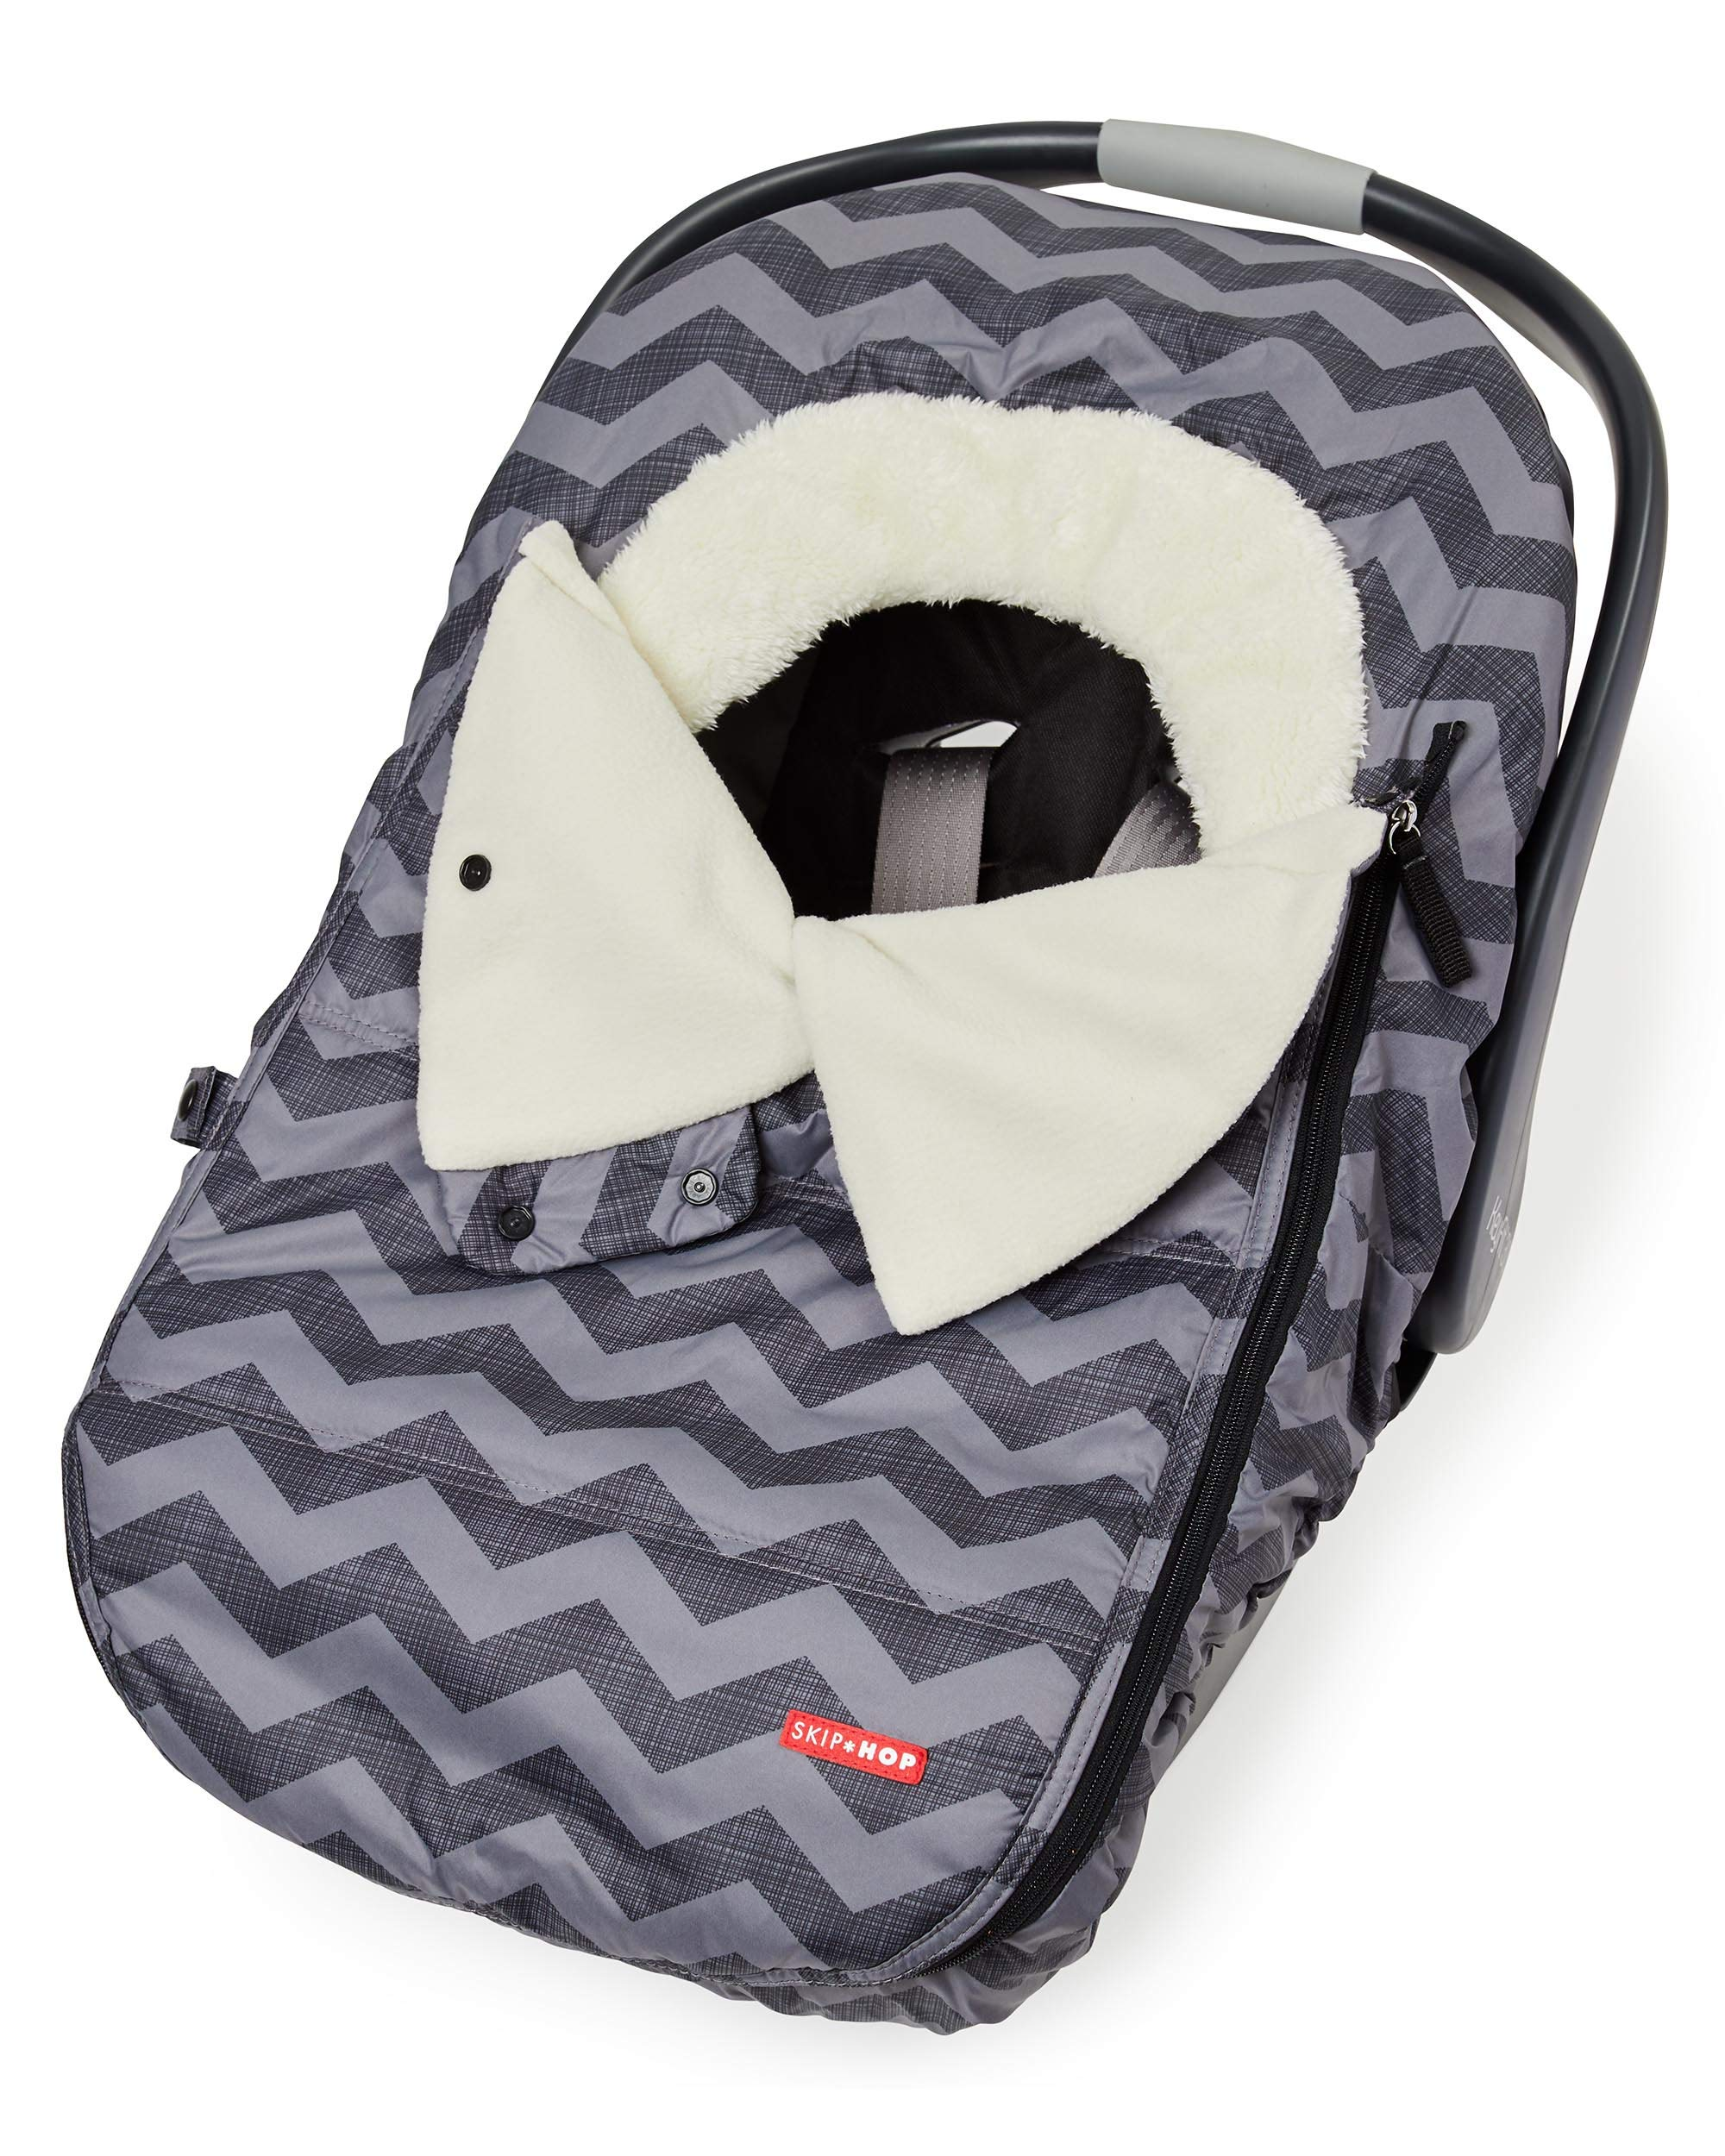 Skip Hop Stroll & Go Infant & Toddler Automotive Car Seat Cover Bunting Accessories, Universal Fit, Tonal Chevron, Black Chevron by Skip Hop (Image #1)